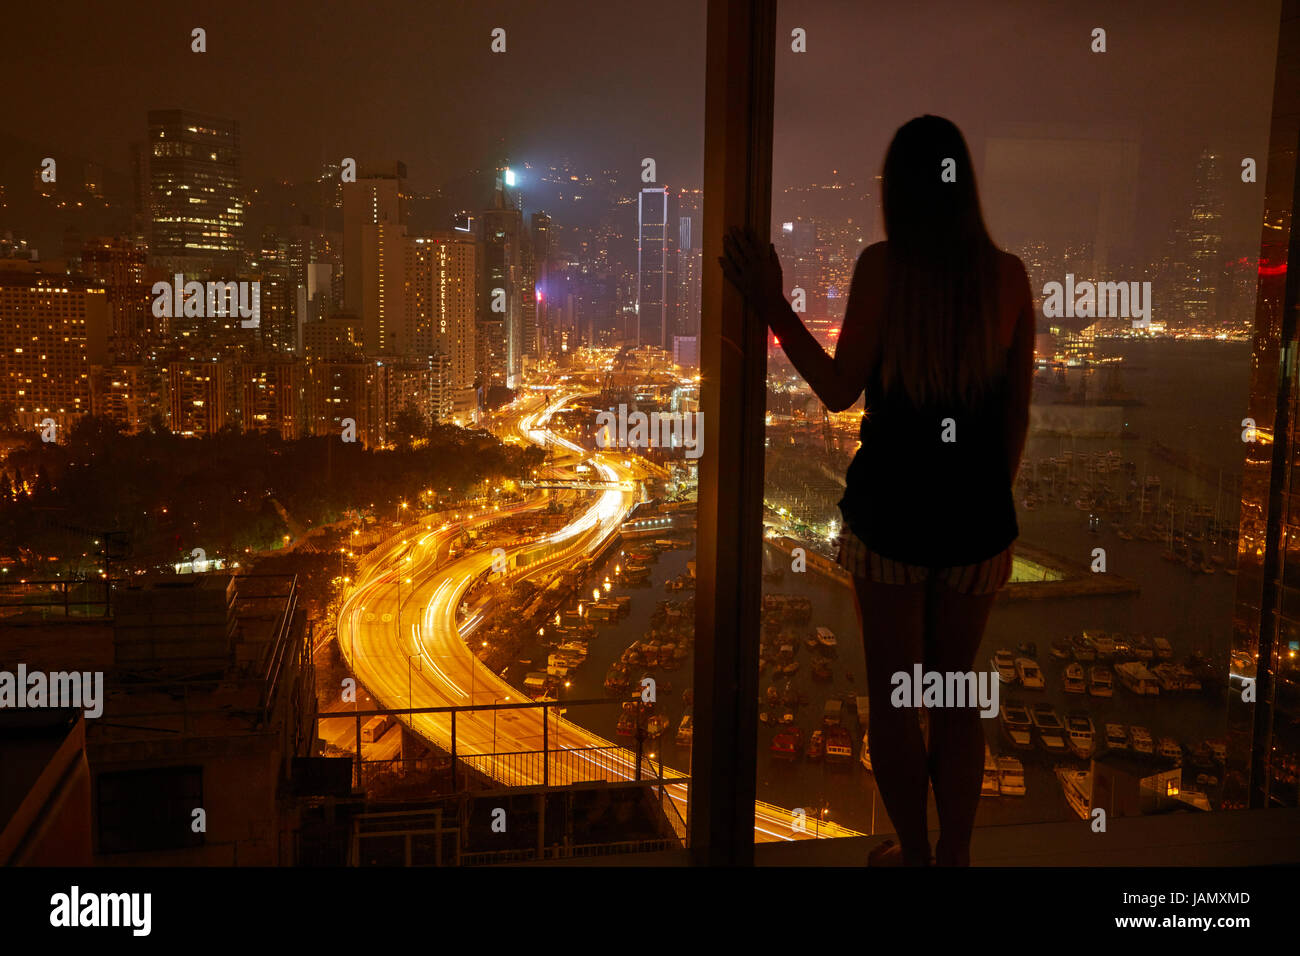 View over Causeway Bay and Hong Kong Island from Twenty One Whitfield Boutique Hotel, Hong Kong, China - Stock Image